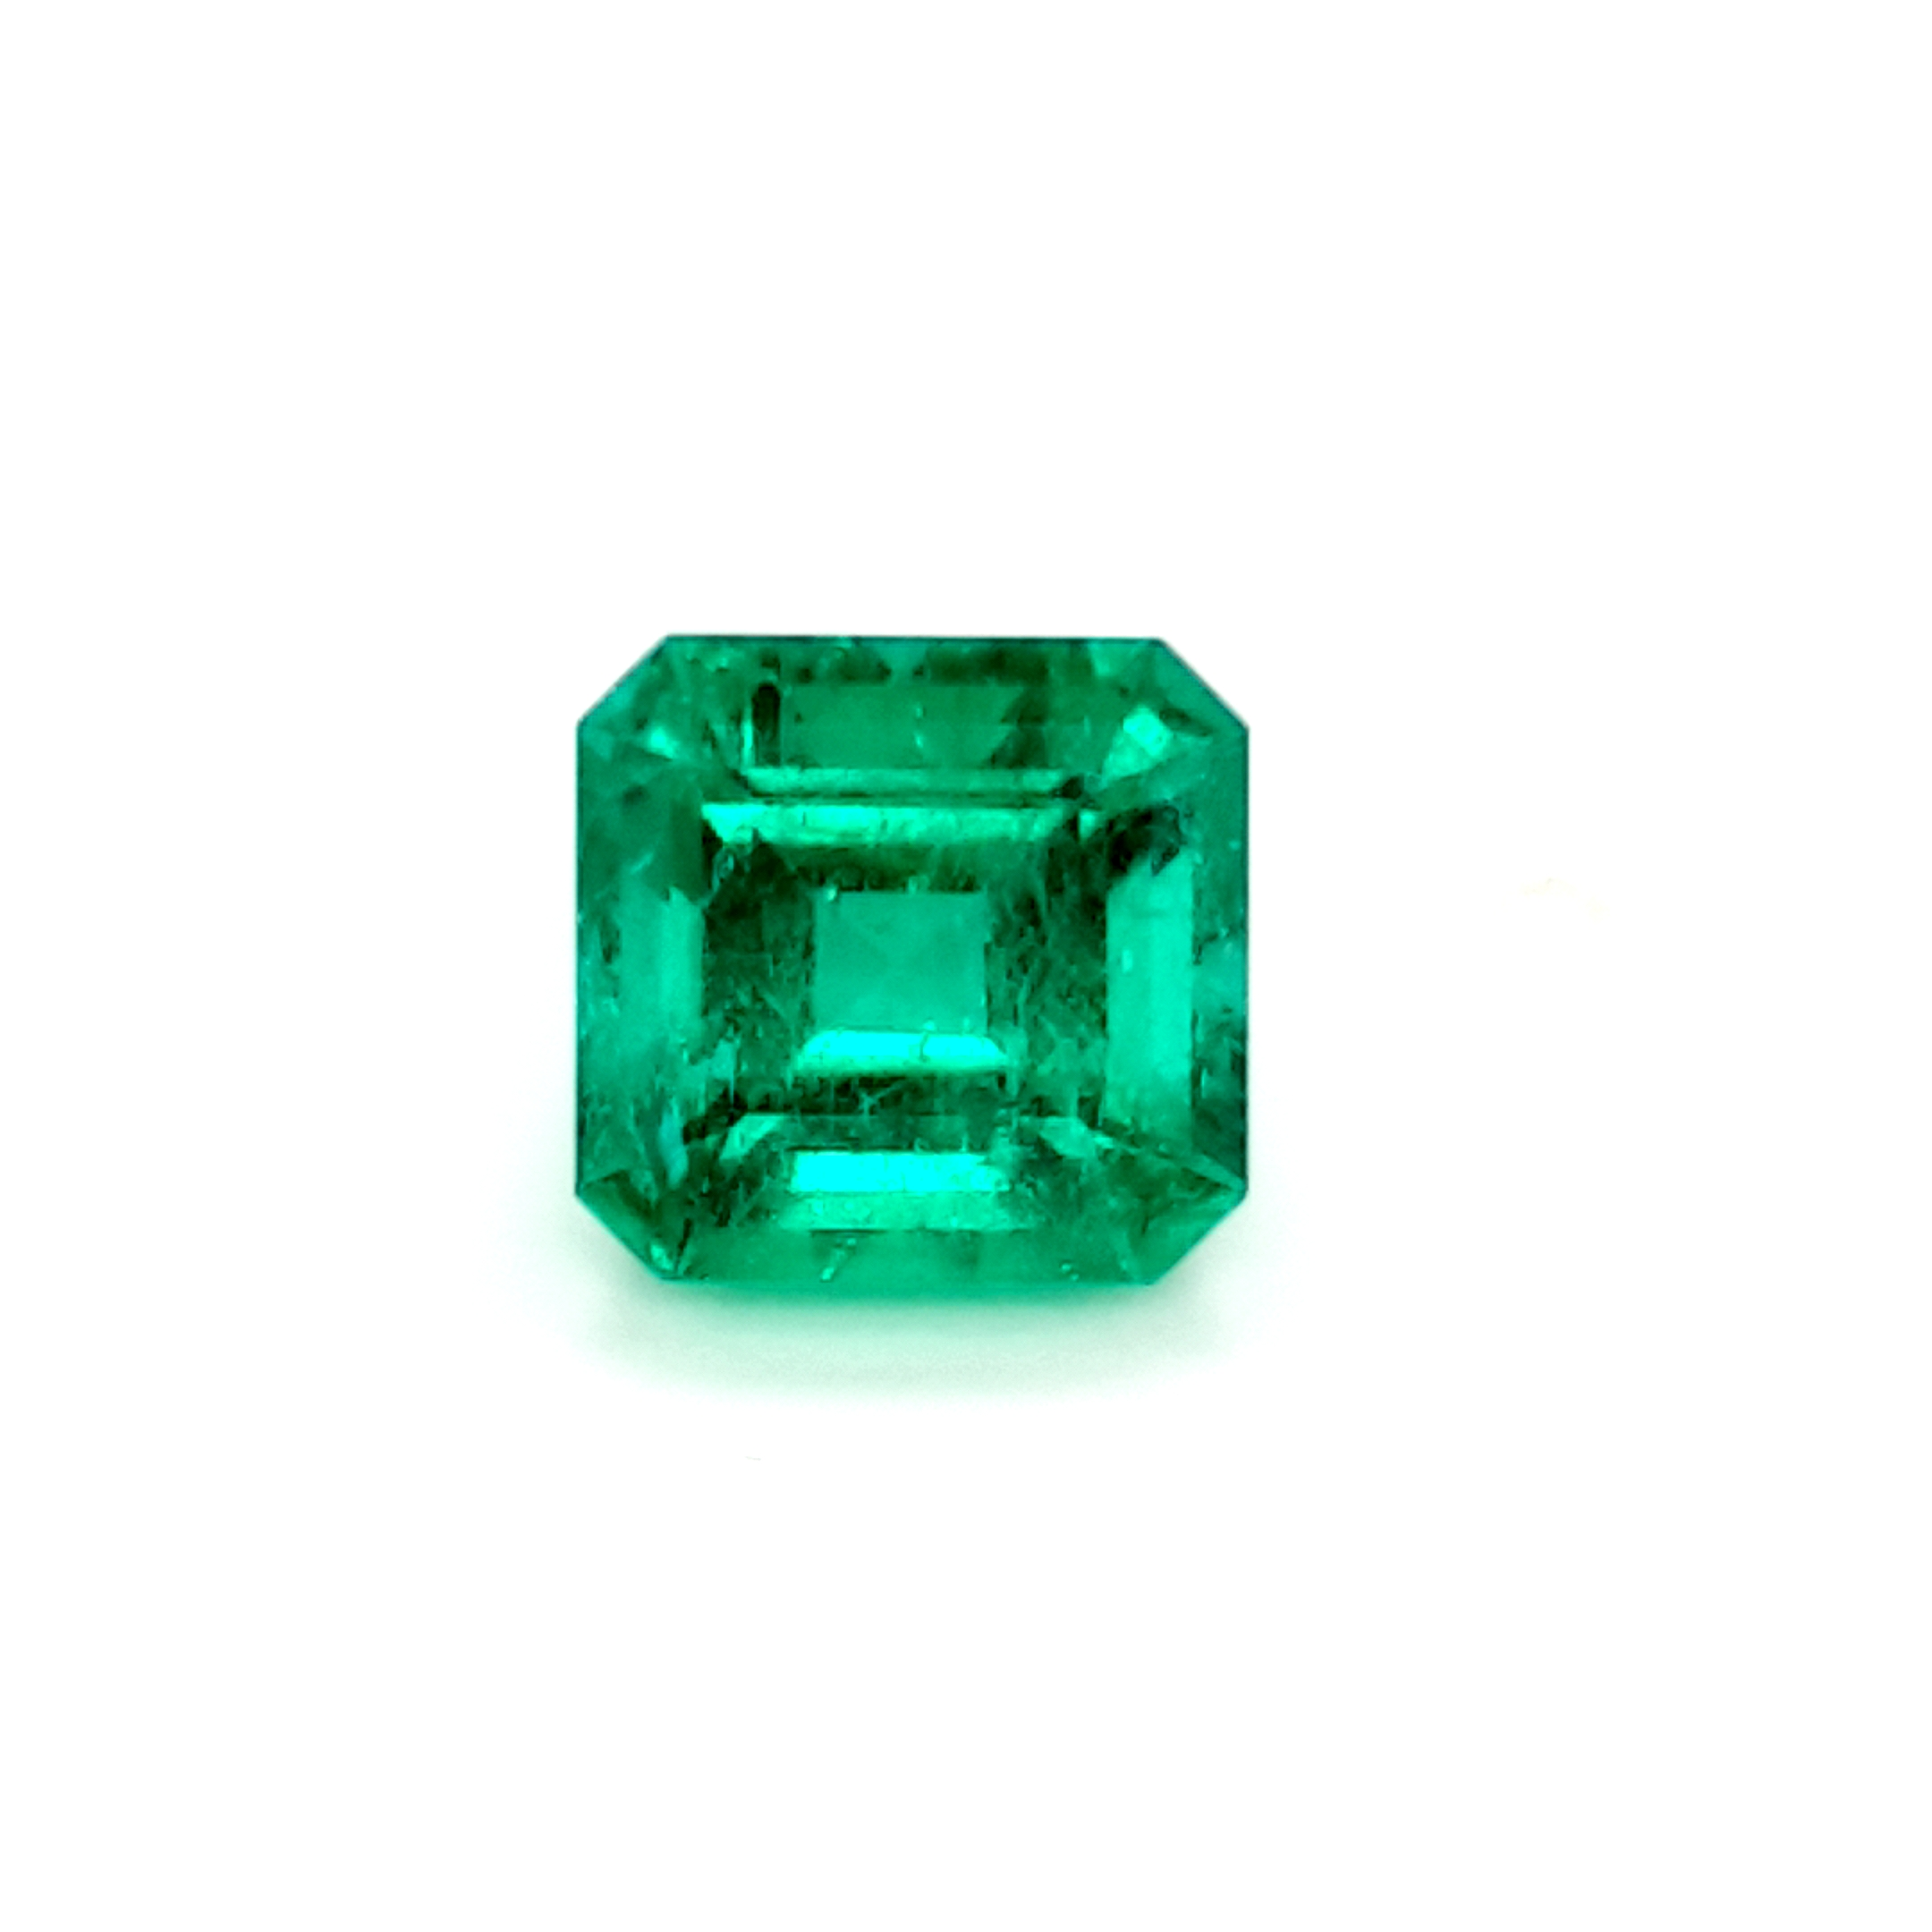 4,41ct. Emerald from Colombia cert. EML13D18 ClaudiaHamann__2021-03-25-23-43-09